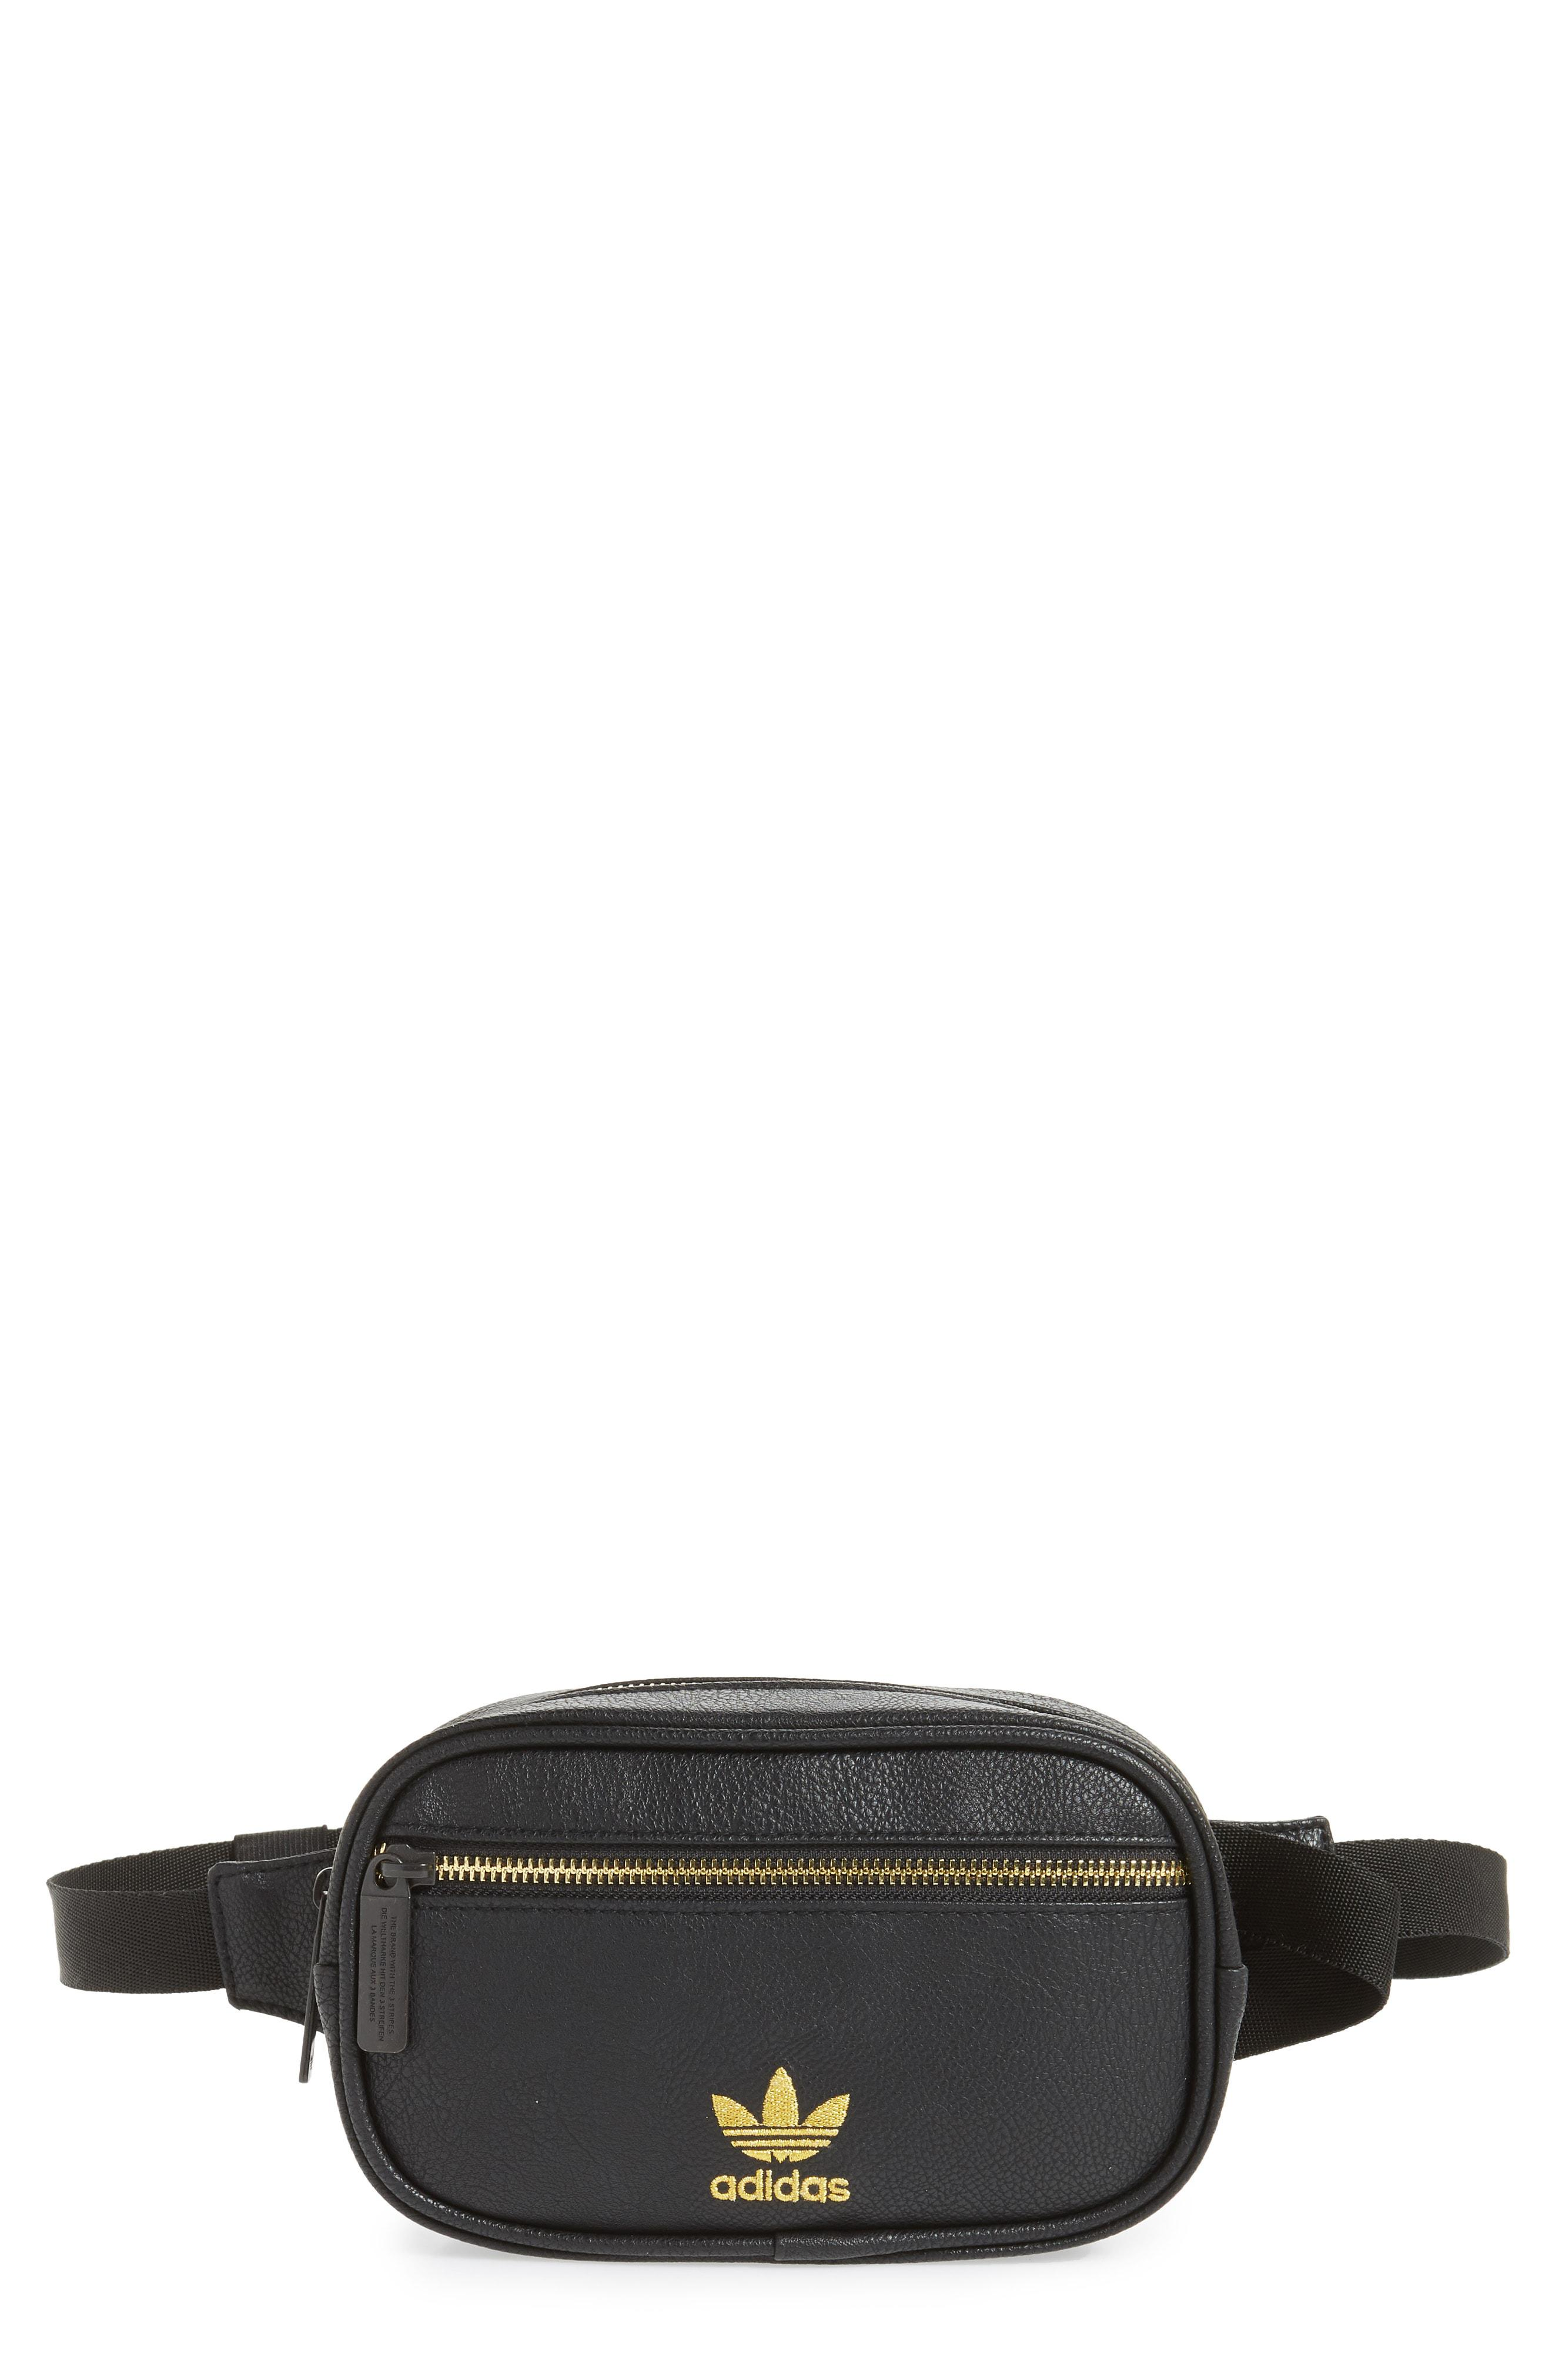 5121e68823f9 Lyst - adidas Originals Adidas Ori Faux Leather Fanny Pack in Black